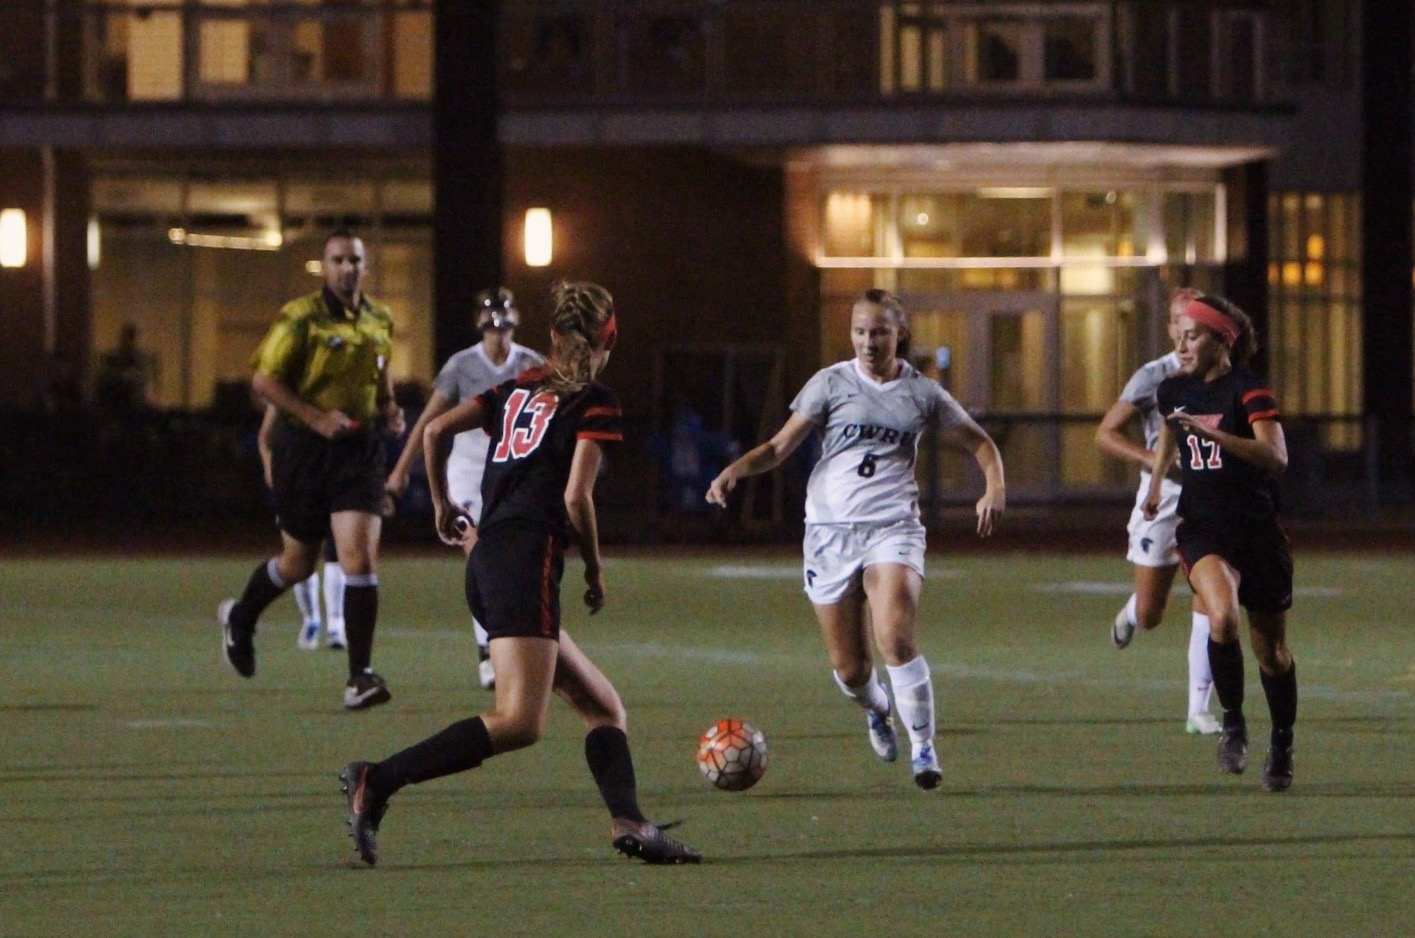 Midfielder and forward Melanie Kukura dribbles by a pair of defenders during a game last year.